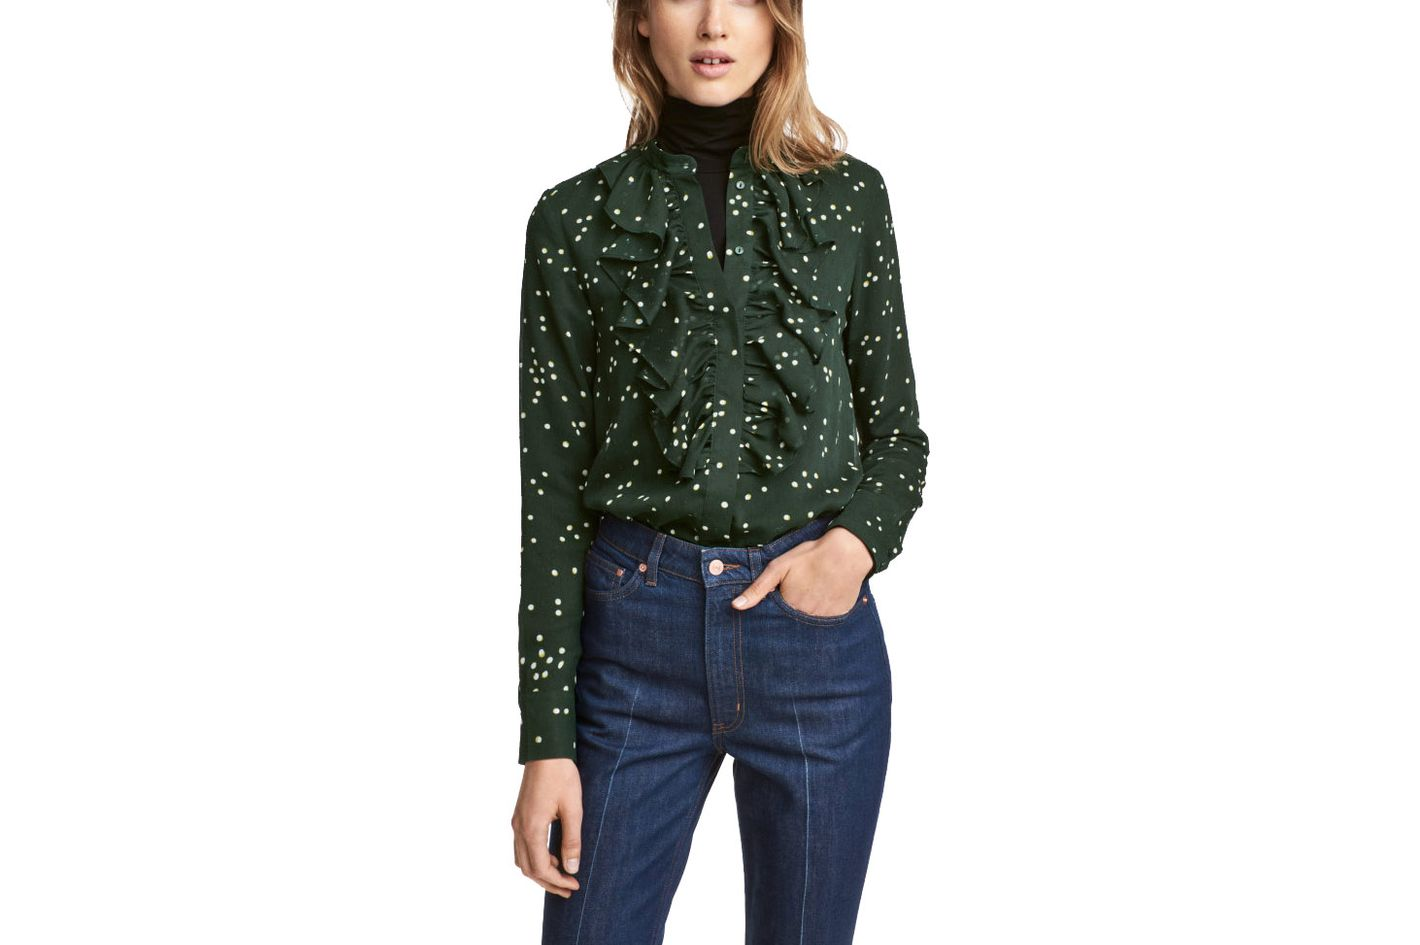 638d9d393f4f64 8 Best Cheap Printed Silk Blouses for Work